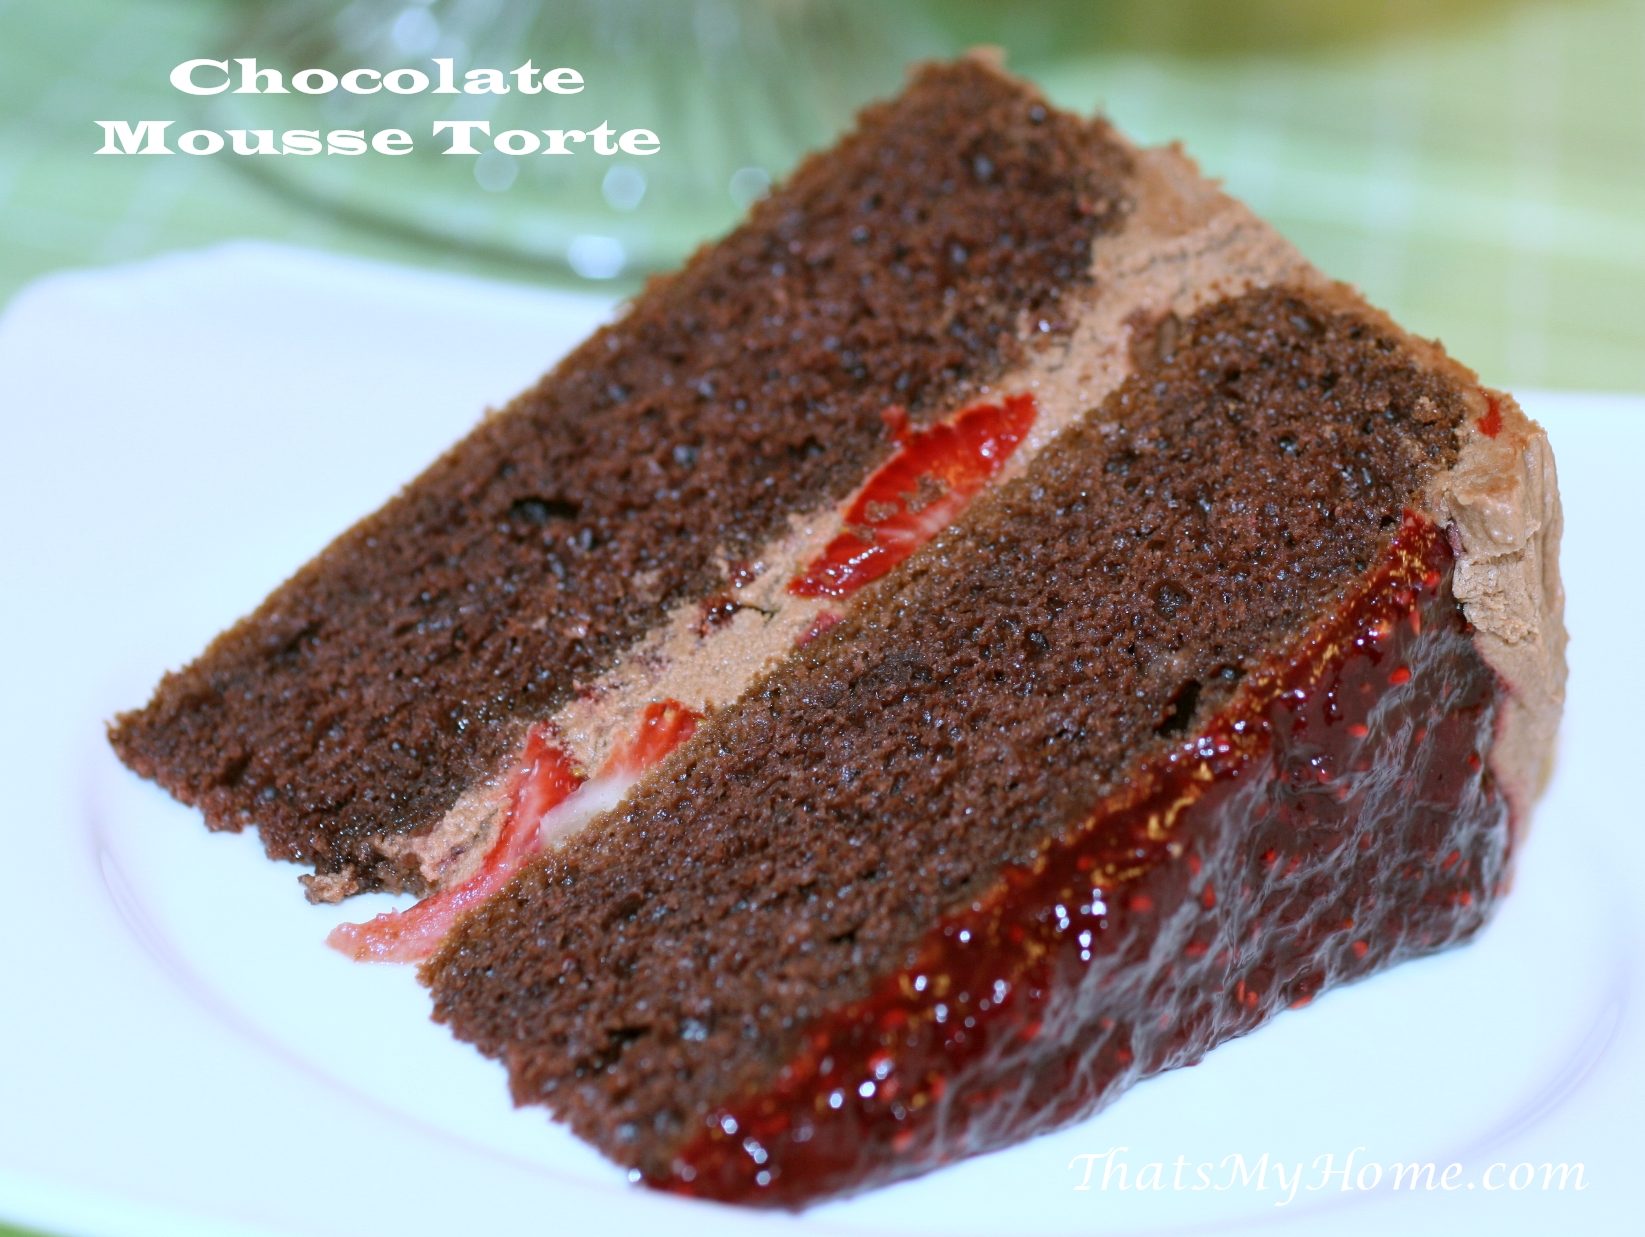 Chocolate cake with strawberry preserves filling